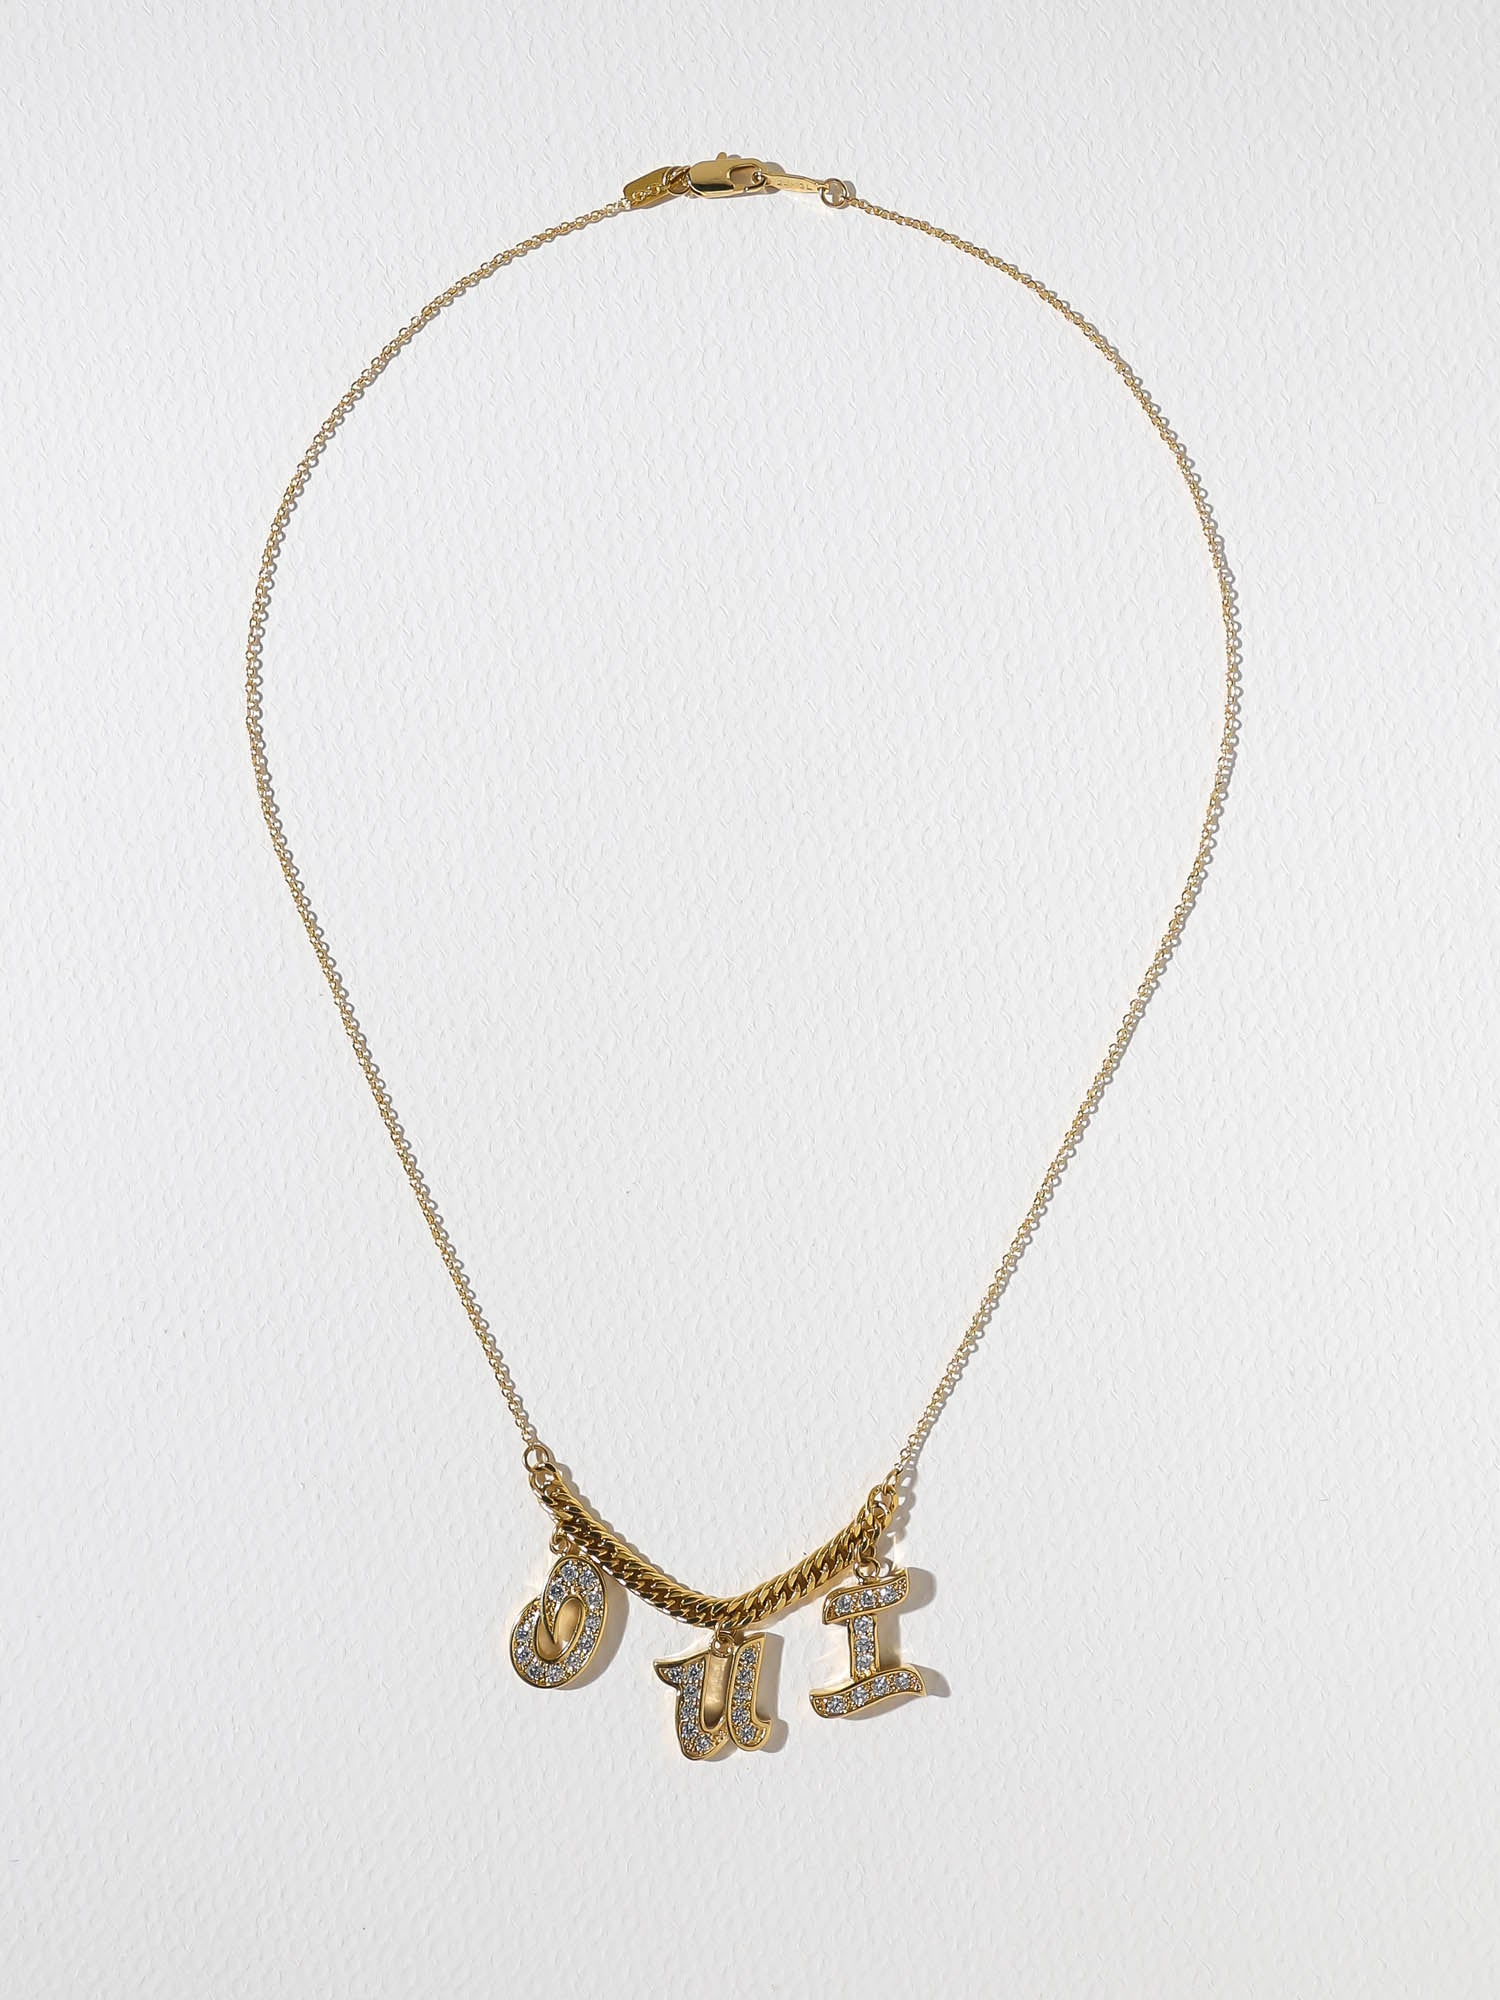 The Oui Necklace